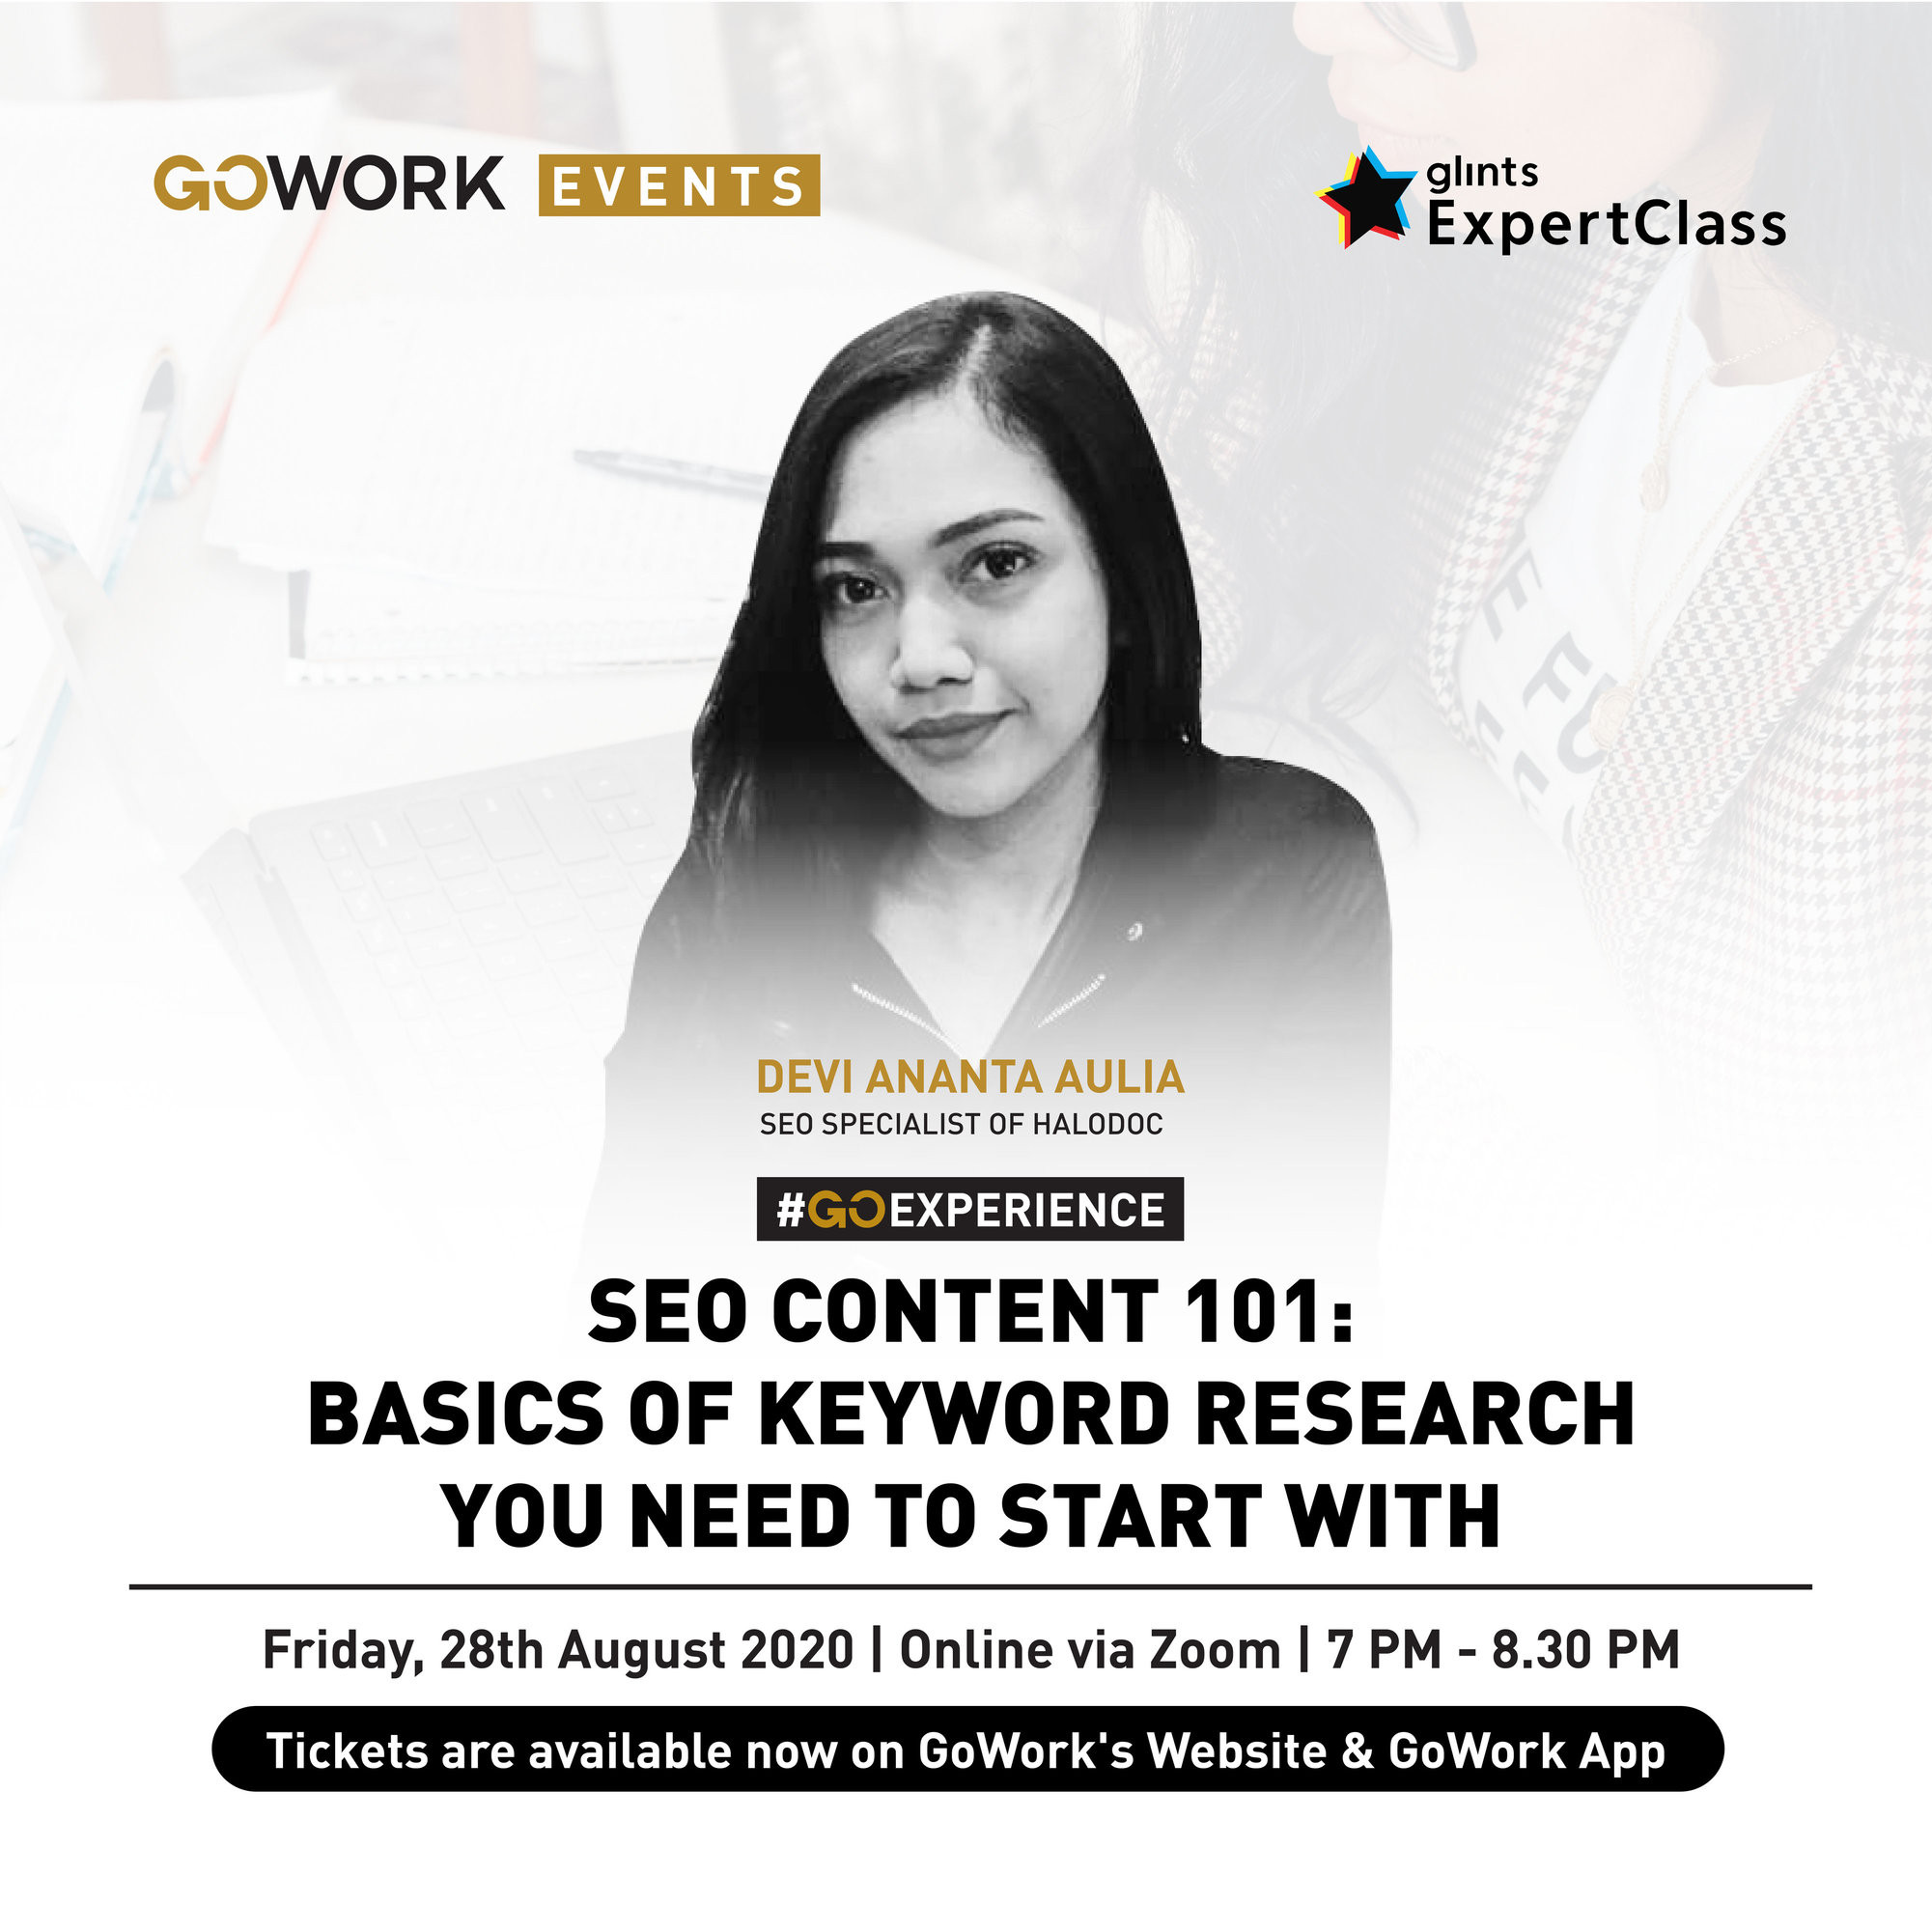 SEO Content 101: Basics of Keyword Research You Need to Start With